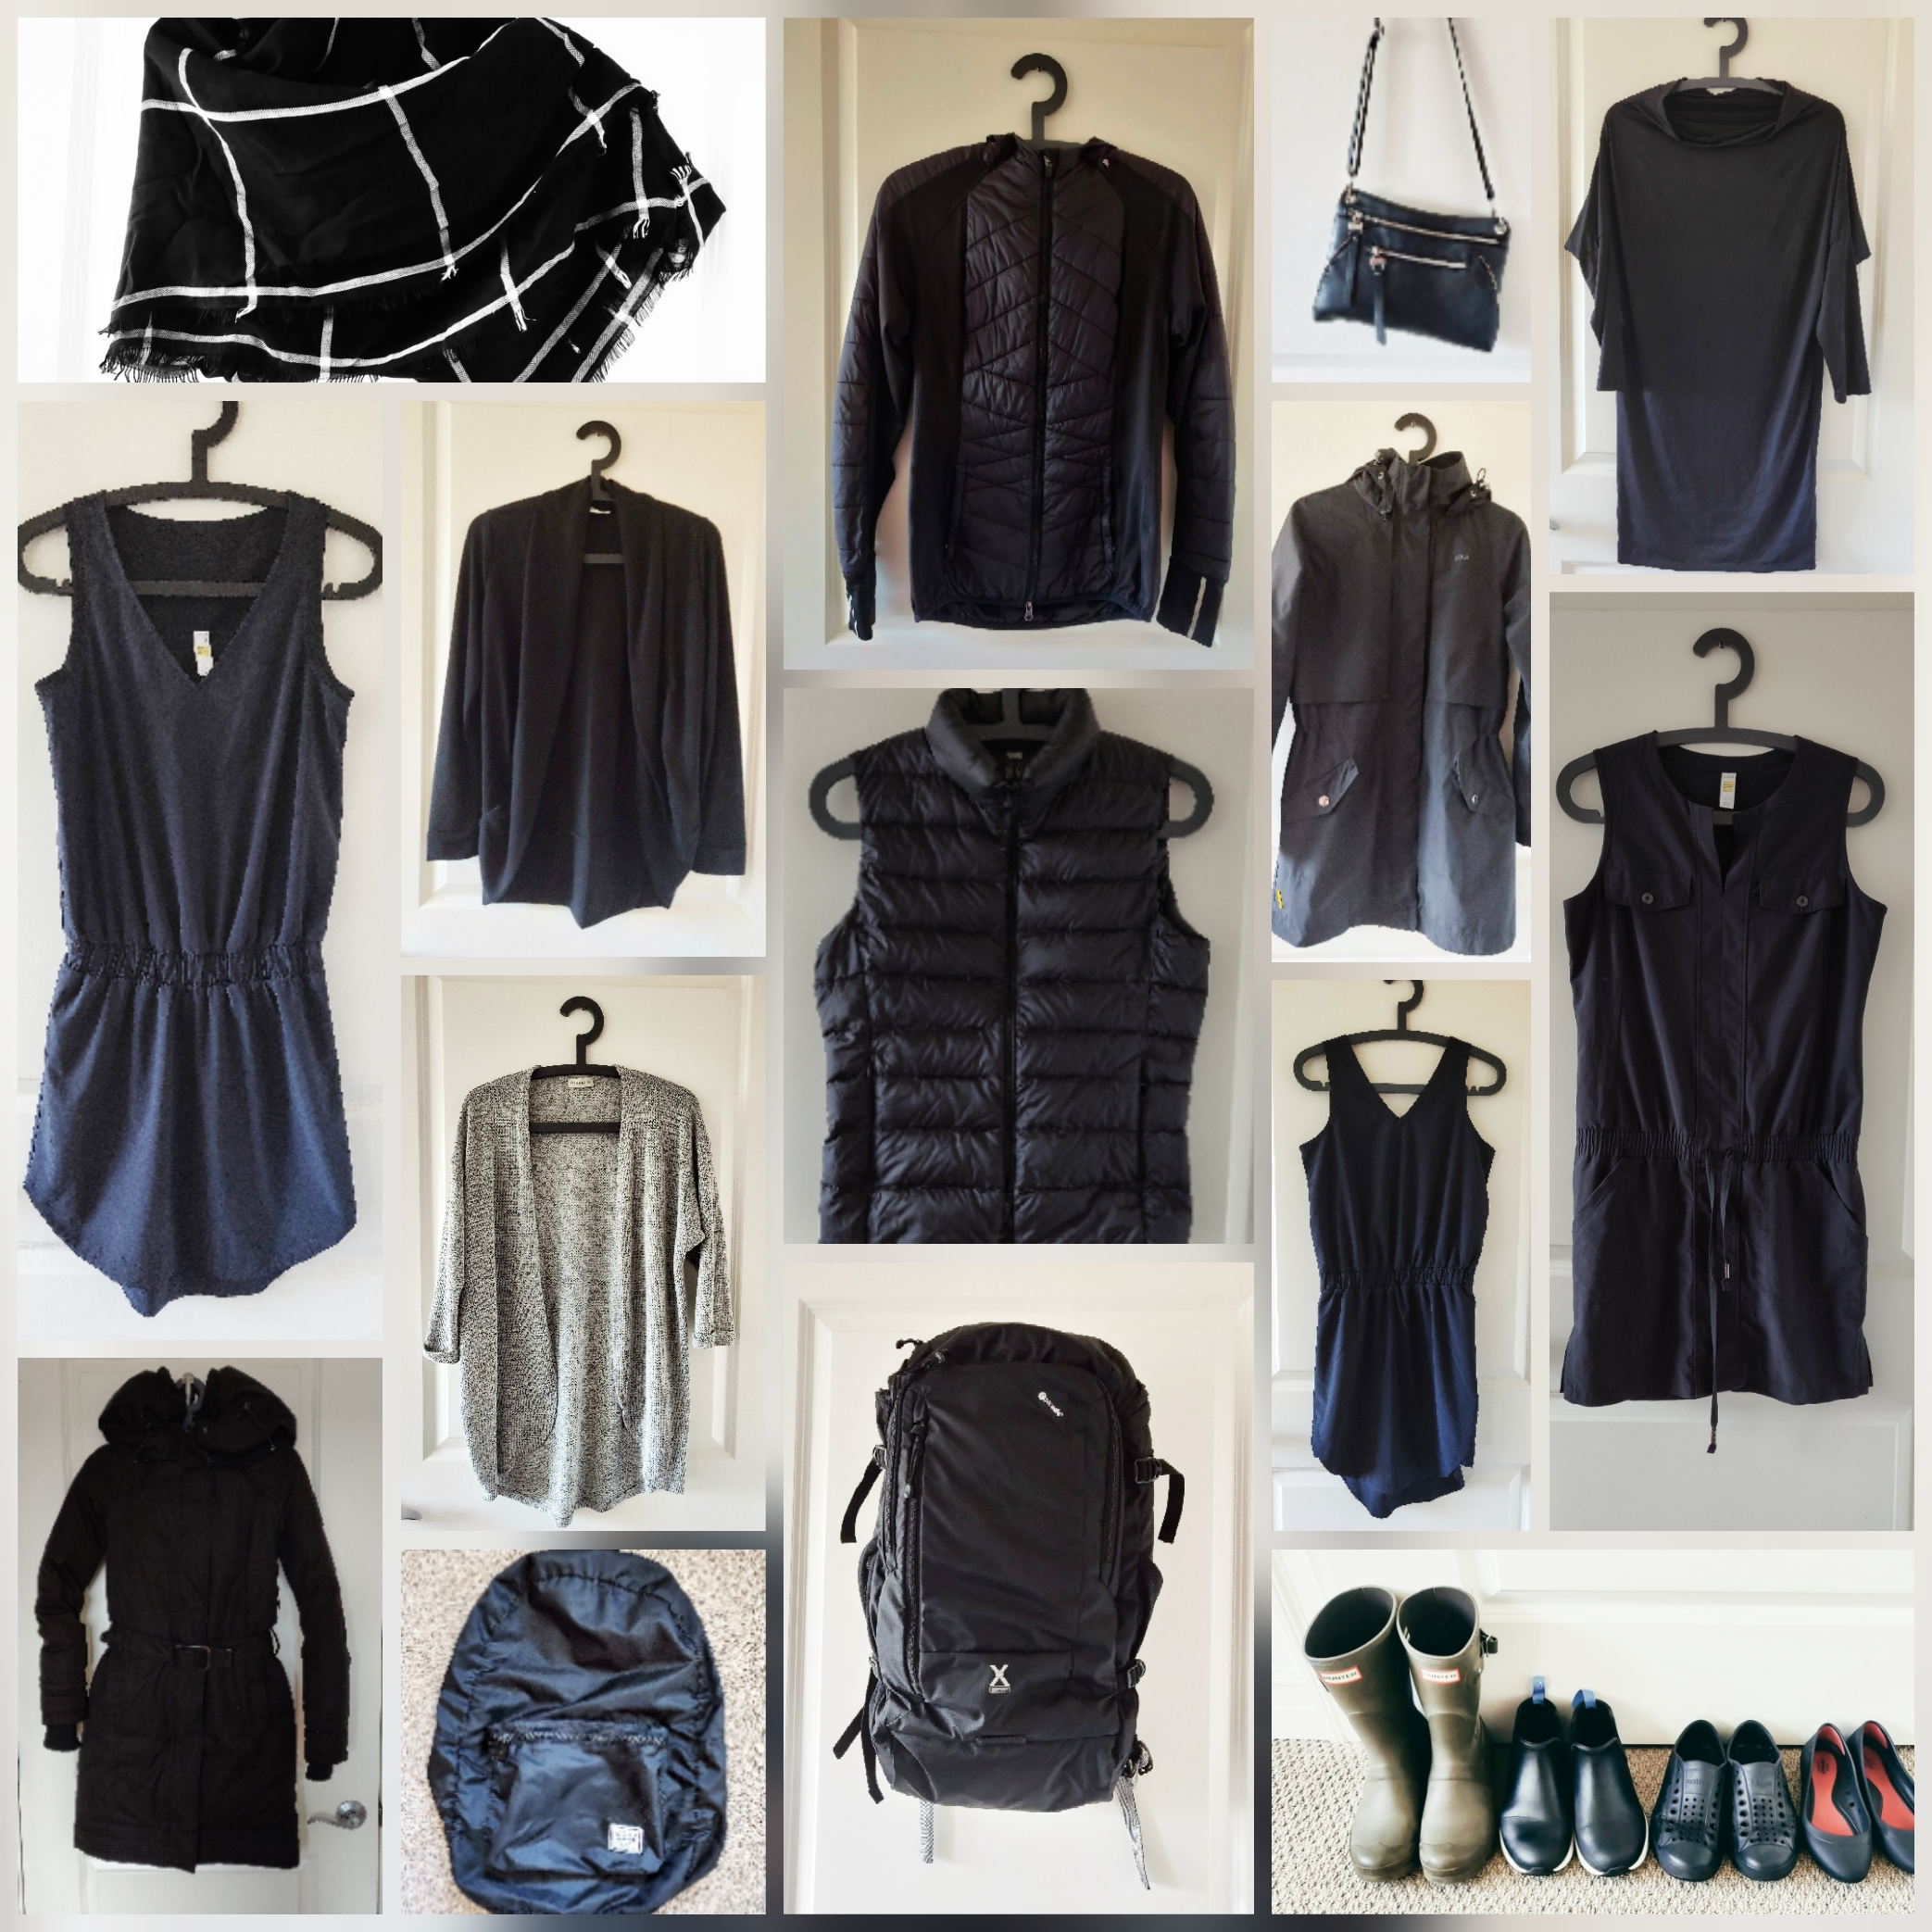 Did you notice that there are only 18 items shown in the picture? See that dress with a drawstring? I have two of those.